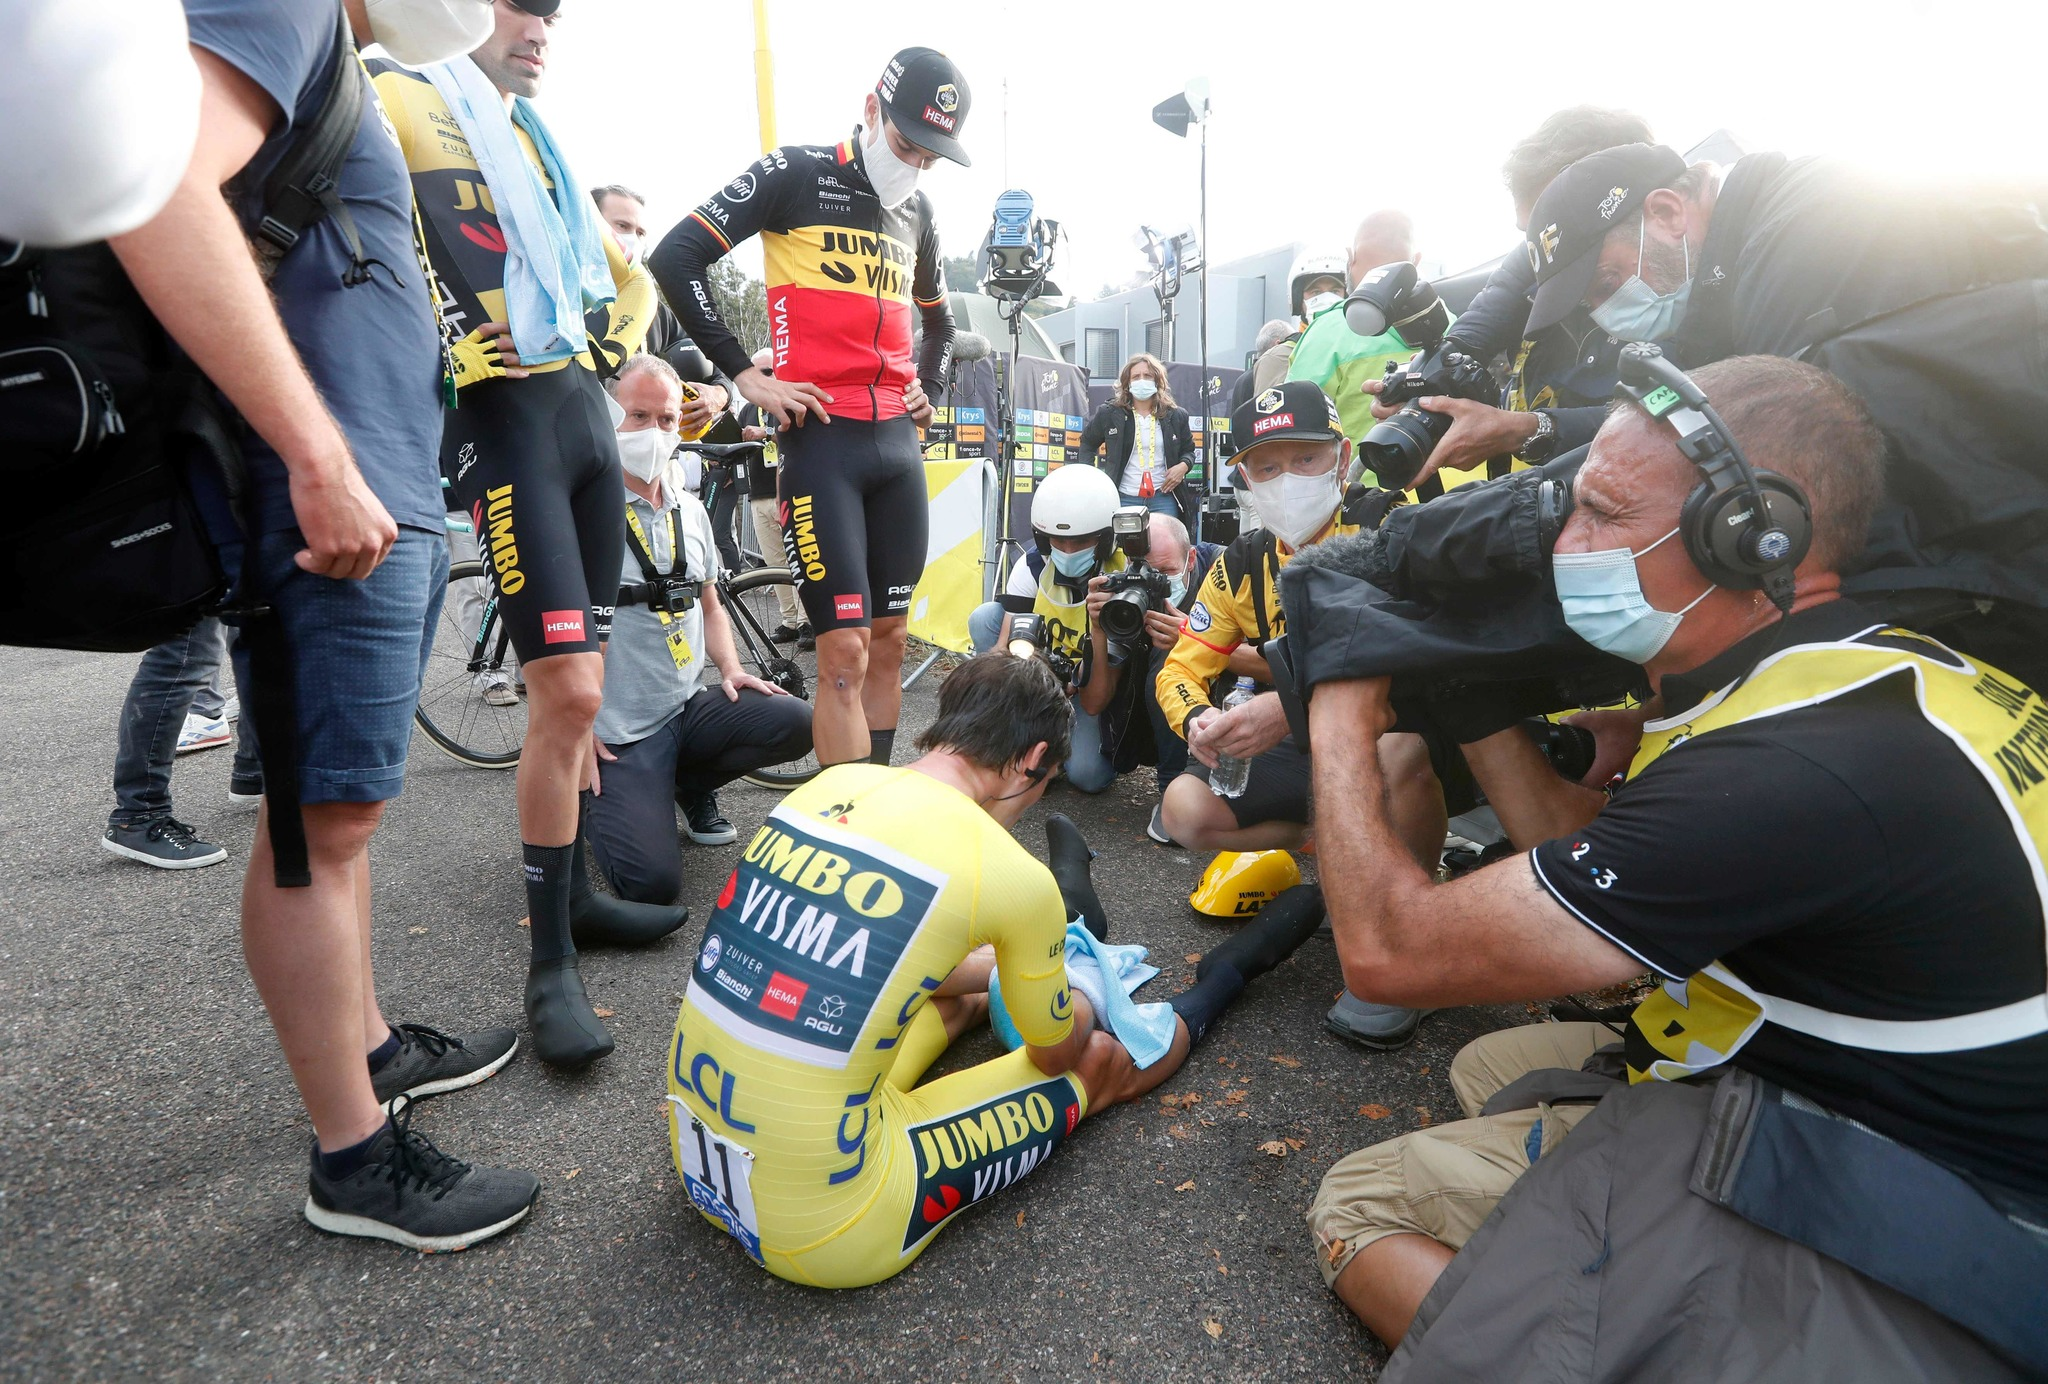 Team Jumbo rider Slovenias Primoz lt;HIT gt;Roglic lt;/HIT gt; wearing the overall leaders yellow jersey (down) rests next to Team Jumbo rider Netherlands Tom Dumoulin (2nd-L) and Team Jumbo rider Belgiums Wout van Aert (3rd-L) after crossing the finish line at the end of the 20th stage of the 107th edition of the Tour de France cycling race, a time trial of 36 km between Lure and La Planche des Belles Filles, on September 19, 2020. (Photo by Thibault Camus / POOL / AFP)